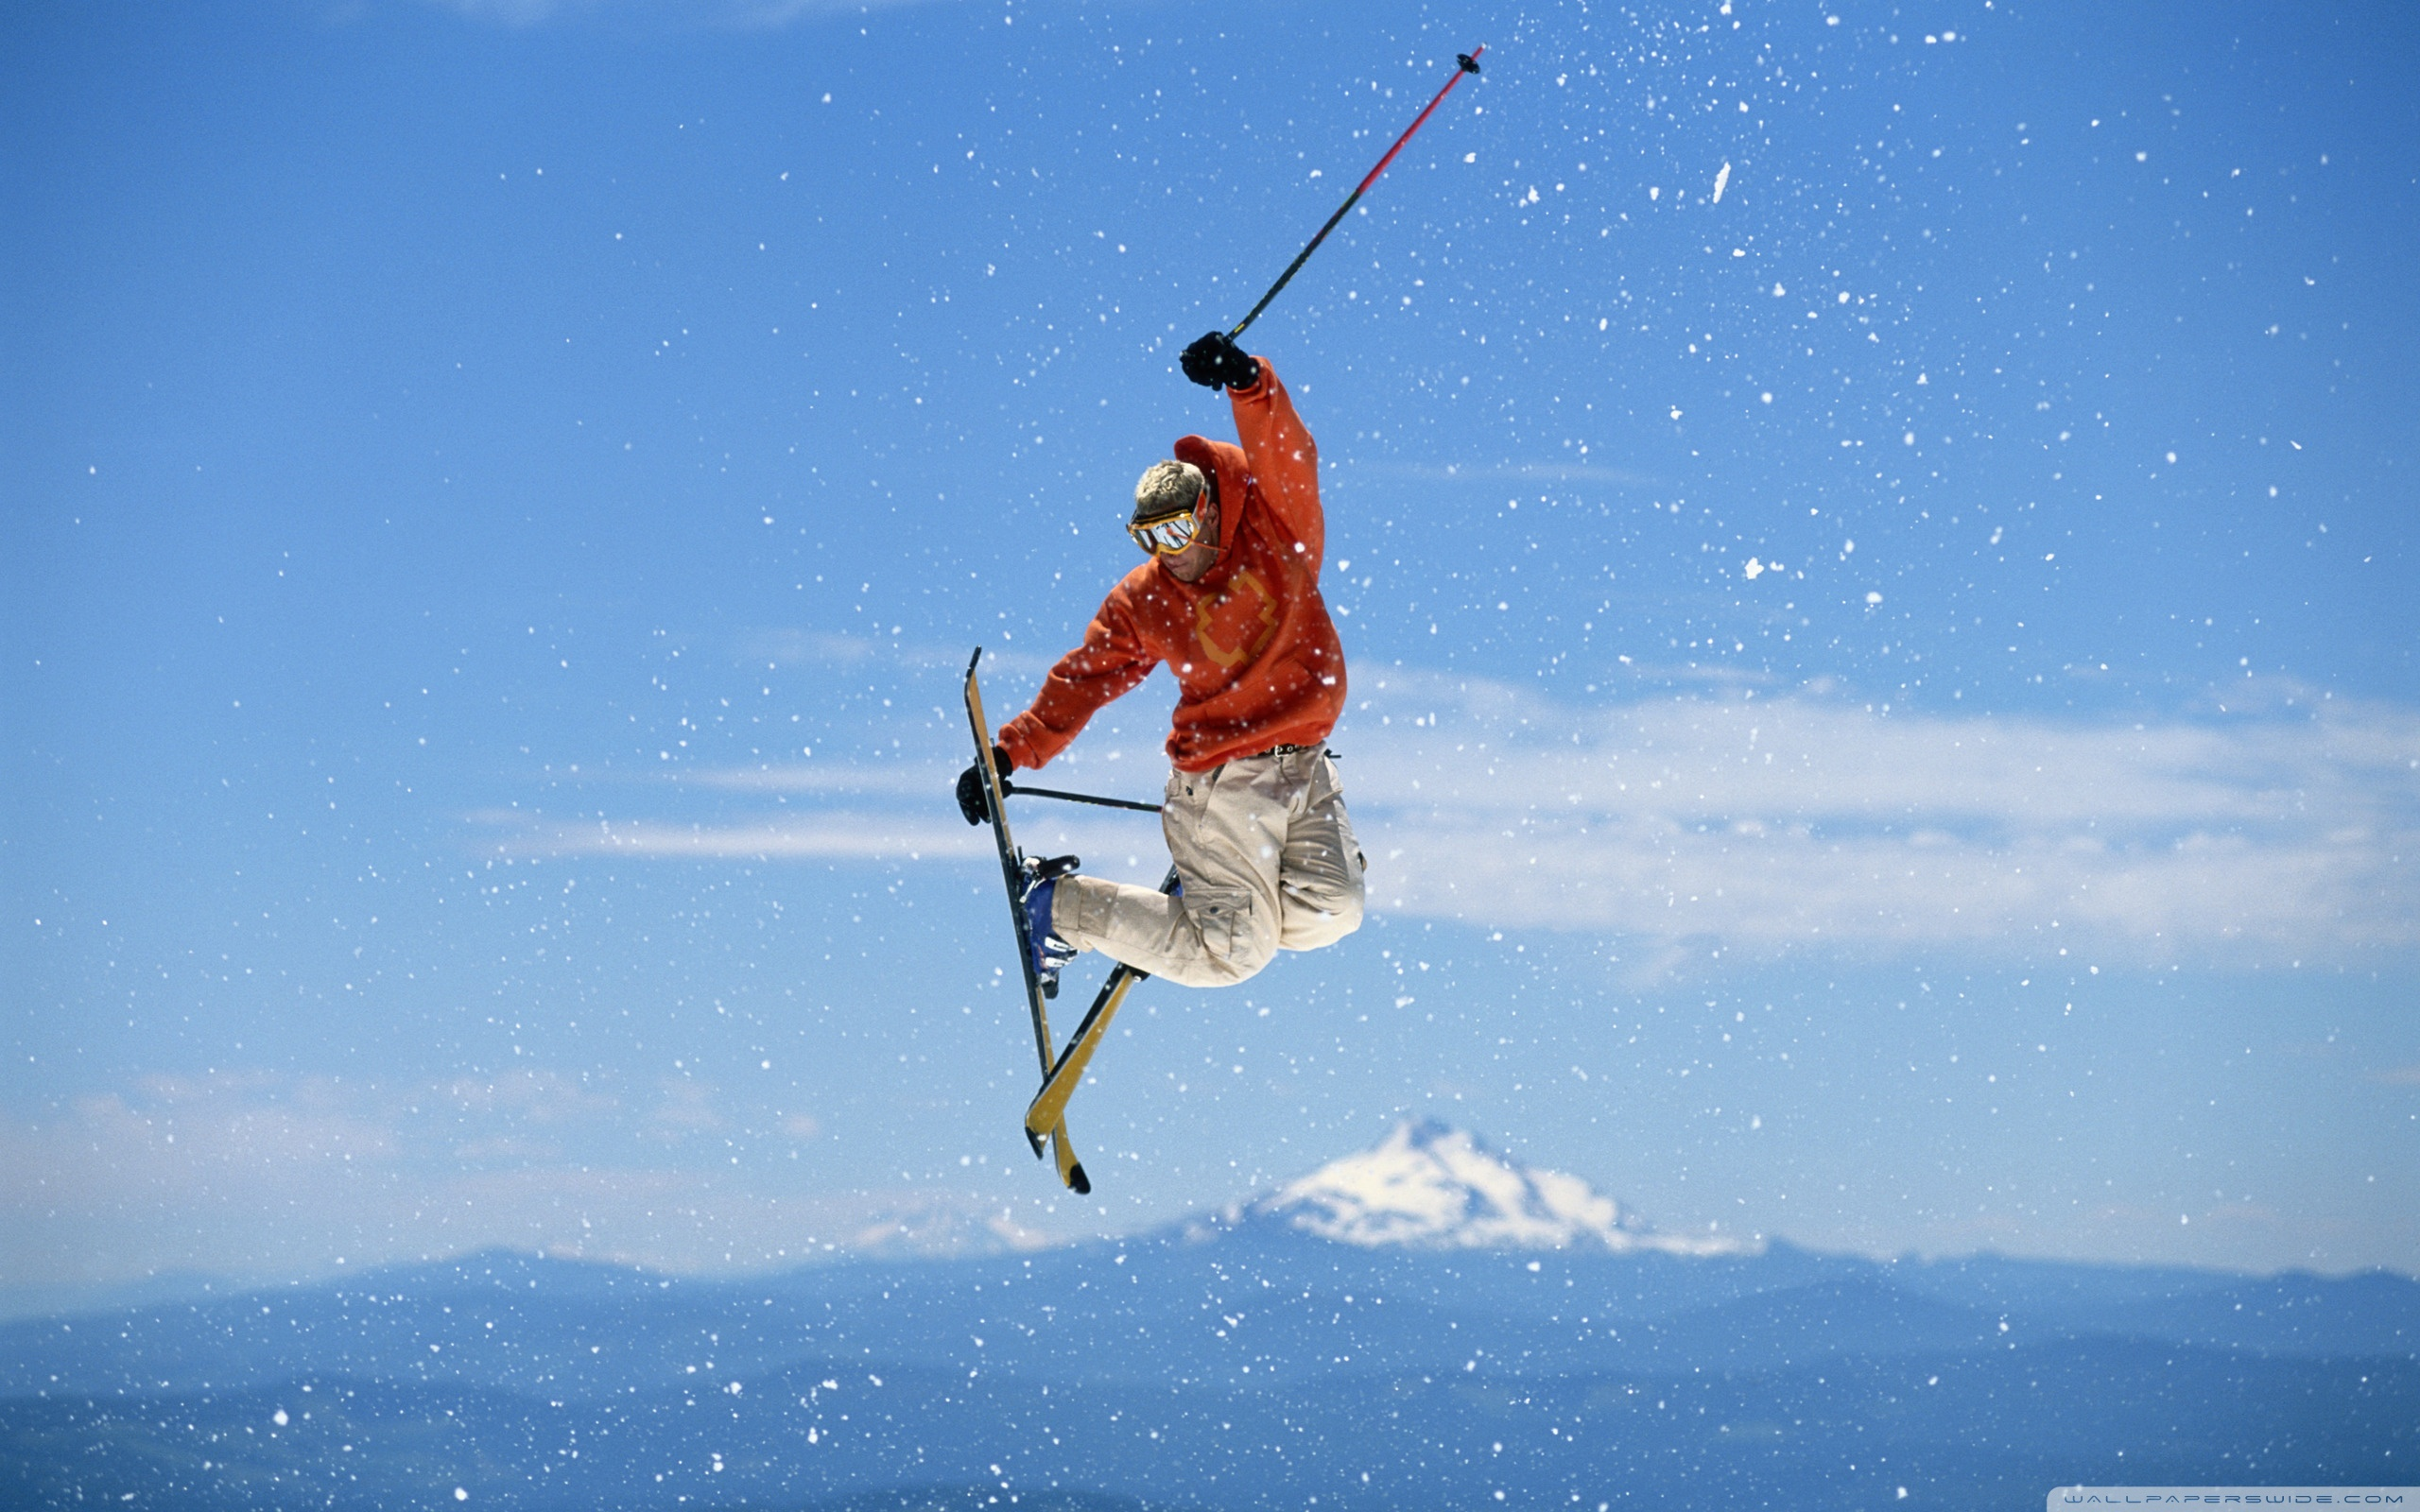 Skiing Wallpaper Wallpaperswide Skiing Hd Desktop Wallpapers For 4k Ultra Hd